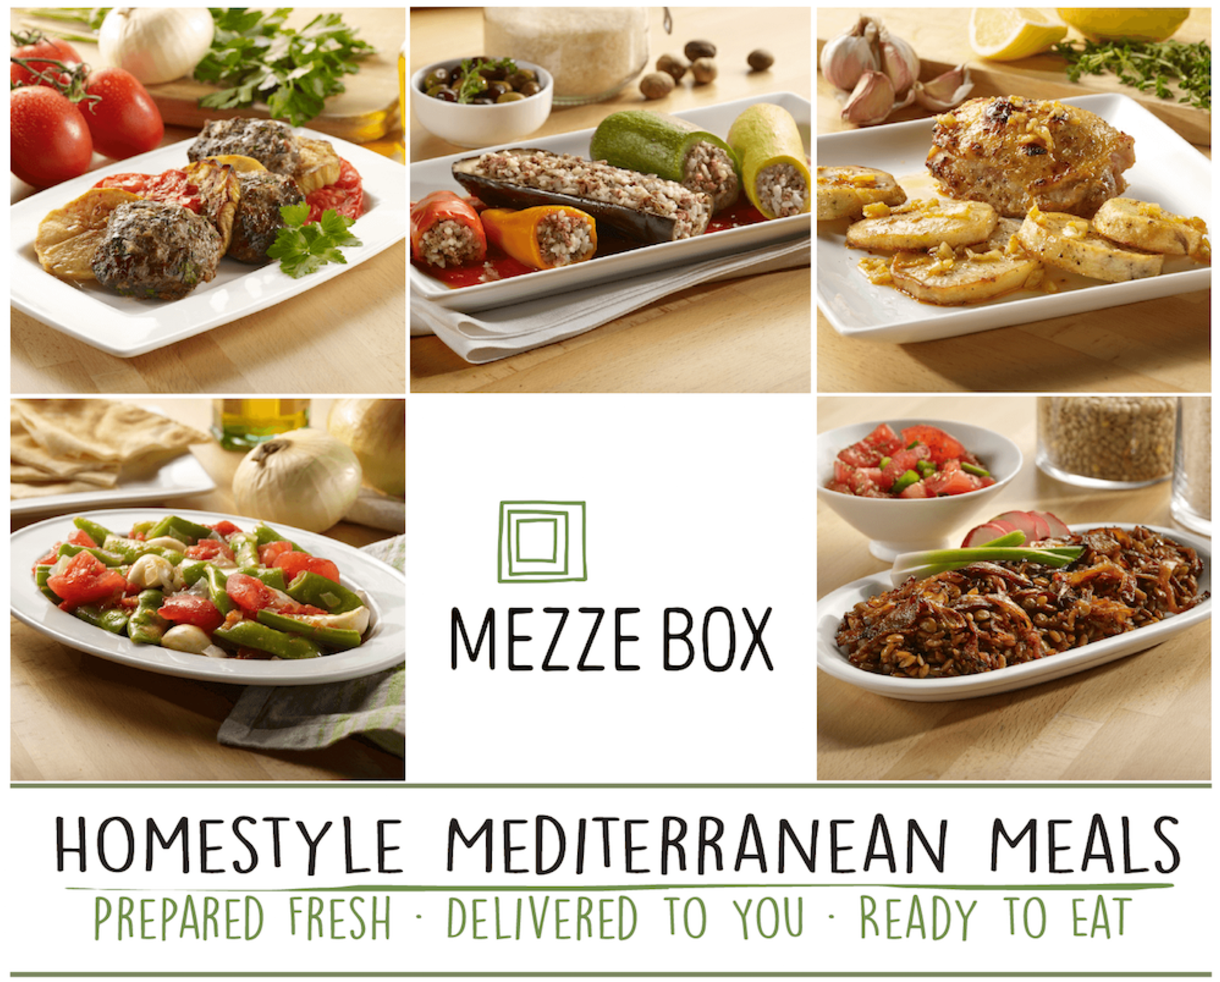 Deal 25 for fresh healthy mediterranean meals delivered right to 25 for fresh healthy mediterranean meals delivered right to your door from brand new mezzebox 50 off forumfinder Choice Image